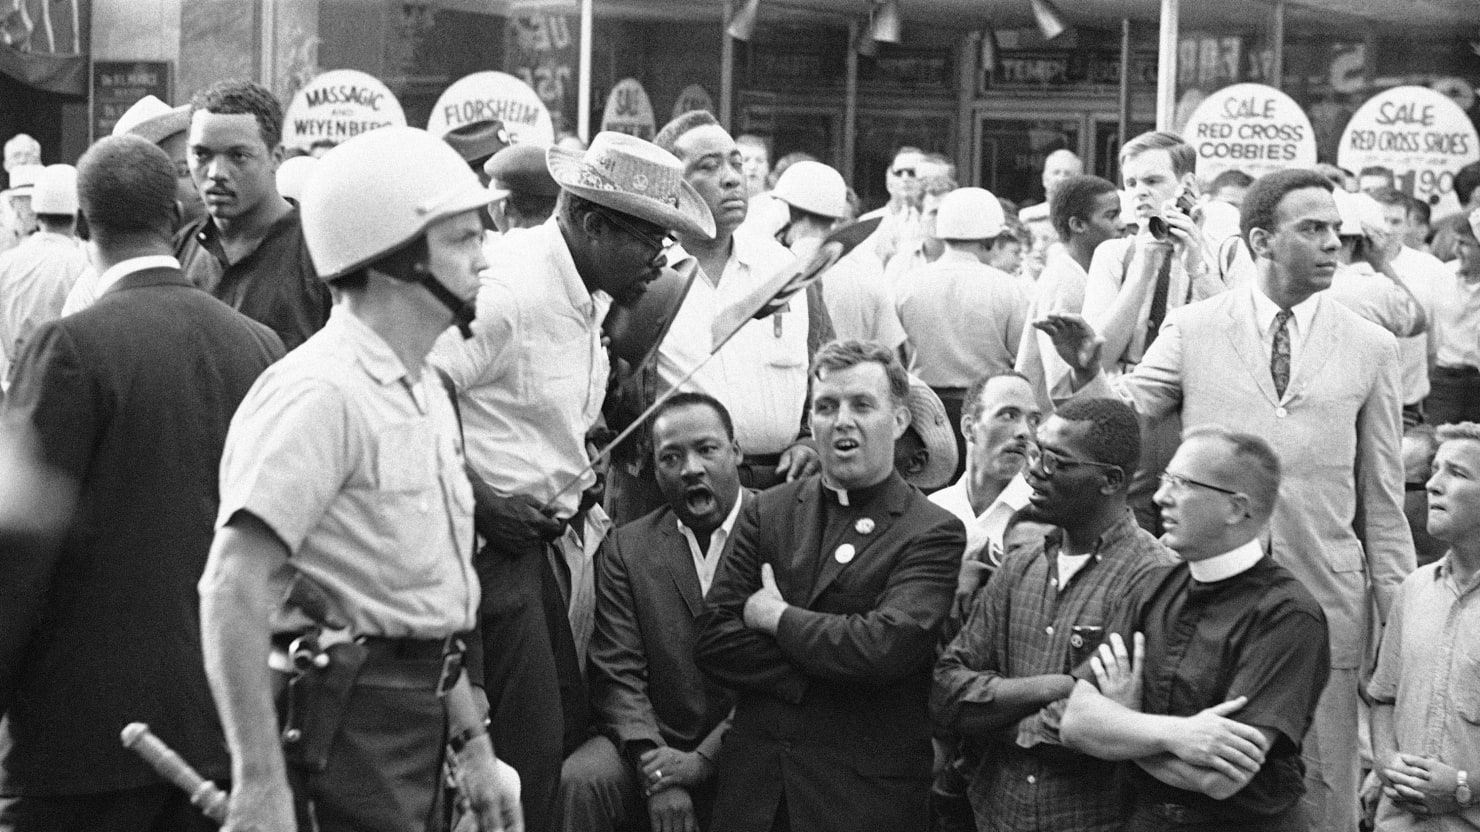 the movement that revolutionized the civil rights Although the southern civil rights movement first made national headlines in the 1950s and 1960s, the struggle for racial equality in america had begun long before.